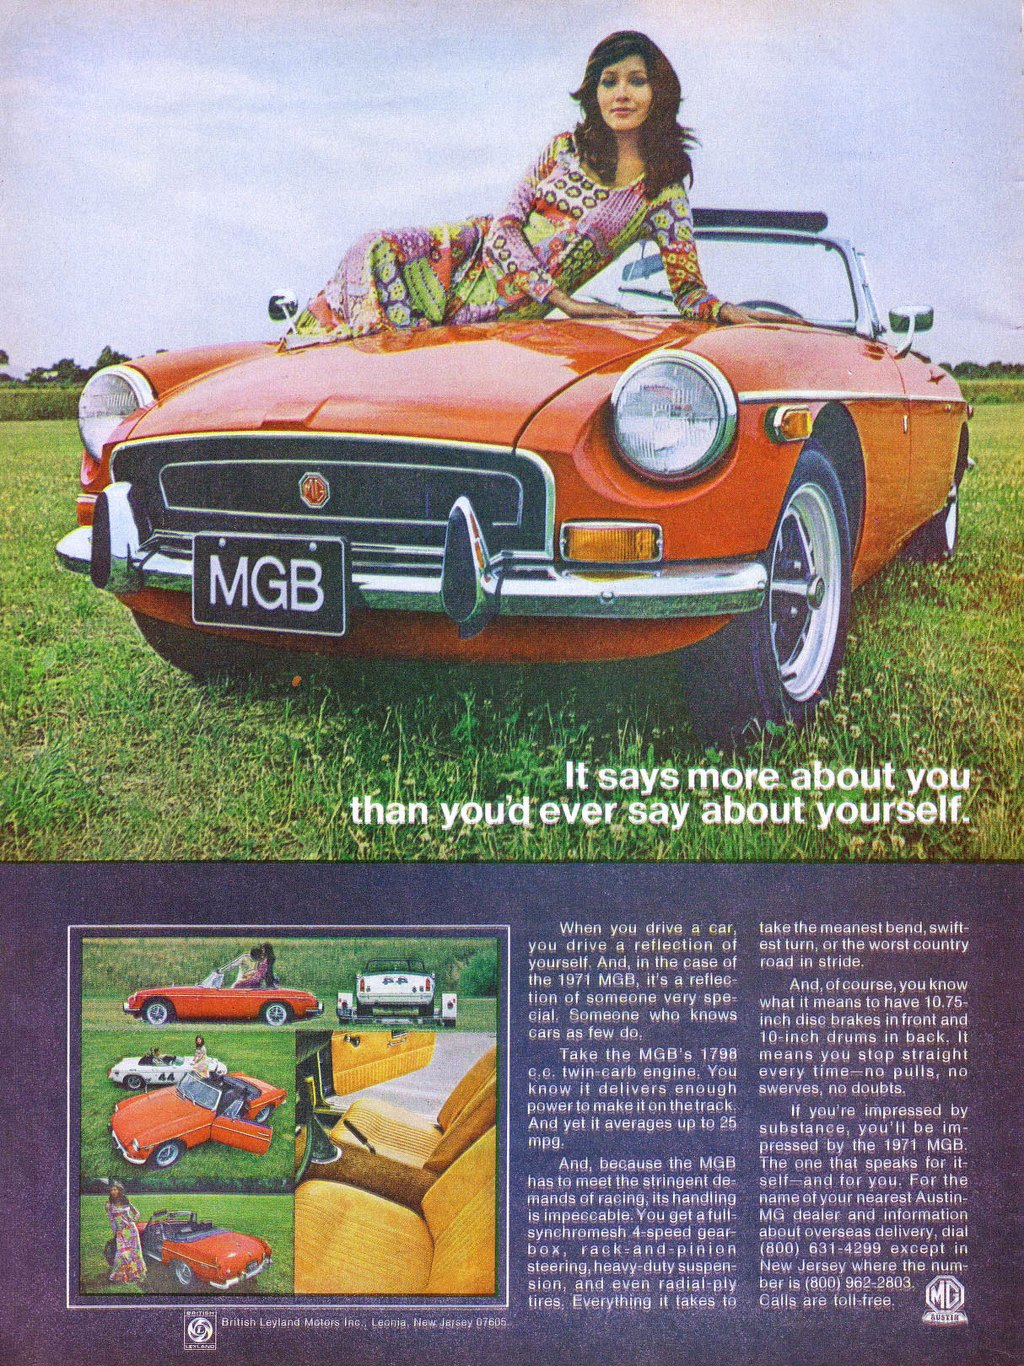 The 1971 MGB. It says more about you than you'd ever say about yourself. When you drive a car, you drive a reflection of yourself. And, in the case of the 1971 MGB, its a reflec-tion of someone very spe-cial. Someone who knows cars as few do. Take the MGB's 1798 c.c. twin-carb engine. You know it delivers enough power to make it on thetrack. And yet if averages up to 25 mpg. And, begause the MGB has to meet the stringent de-mands of raping, its handling is impeccable. You get a full-synchronie.sh 4-speed gear-box, rack-and-pinion steering, heavy-duty suspen-sion, and even radial-ply tires. Everything it takes to take the meanest bend, swift-est turn, or the worst country road in stride. And, of course, you know what it means to have 10.75-inch disc brakes in front and 10-inch drums in back. It means you stop straight every time—no pulls, no swerves, no doubts. If you're impressed by substance, you'll be im-pressed by the 1971 MGB. The one that speaks for it-seif—and for you. For the name of your nearest Austin-MG dealer and information about overseas delivery, dial (800) 631-4299 except in New Jersey where the num-ber is (800) 962-2803. Galls are toll-free.